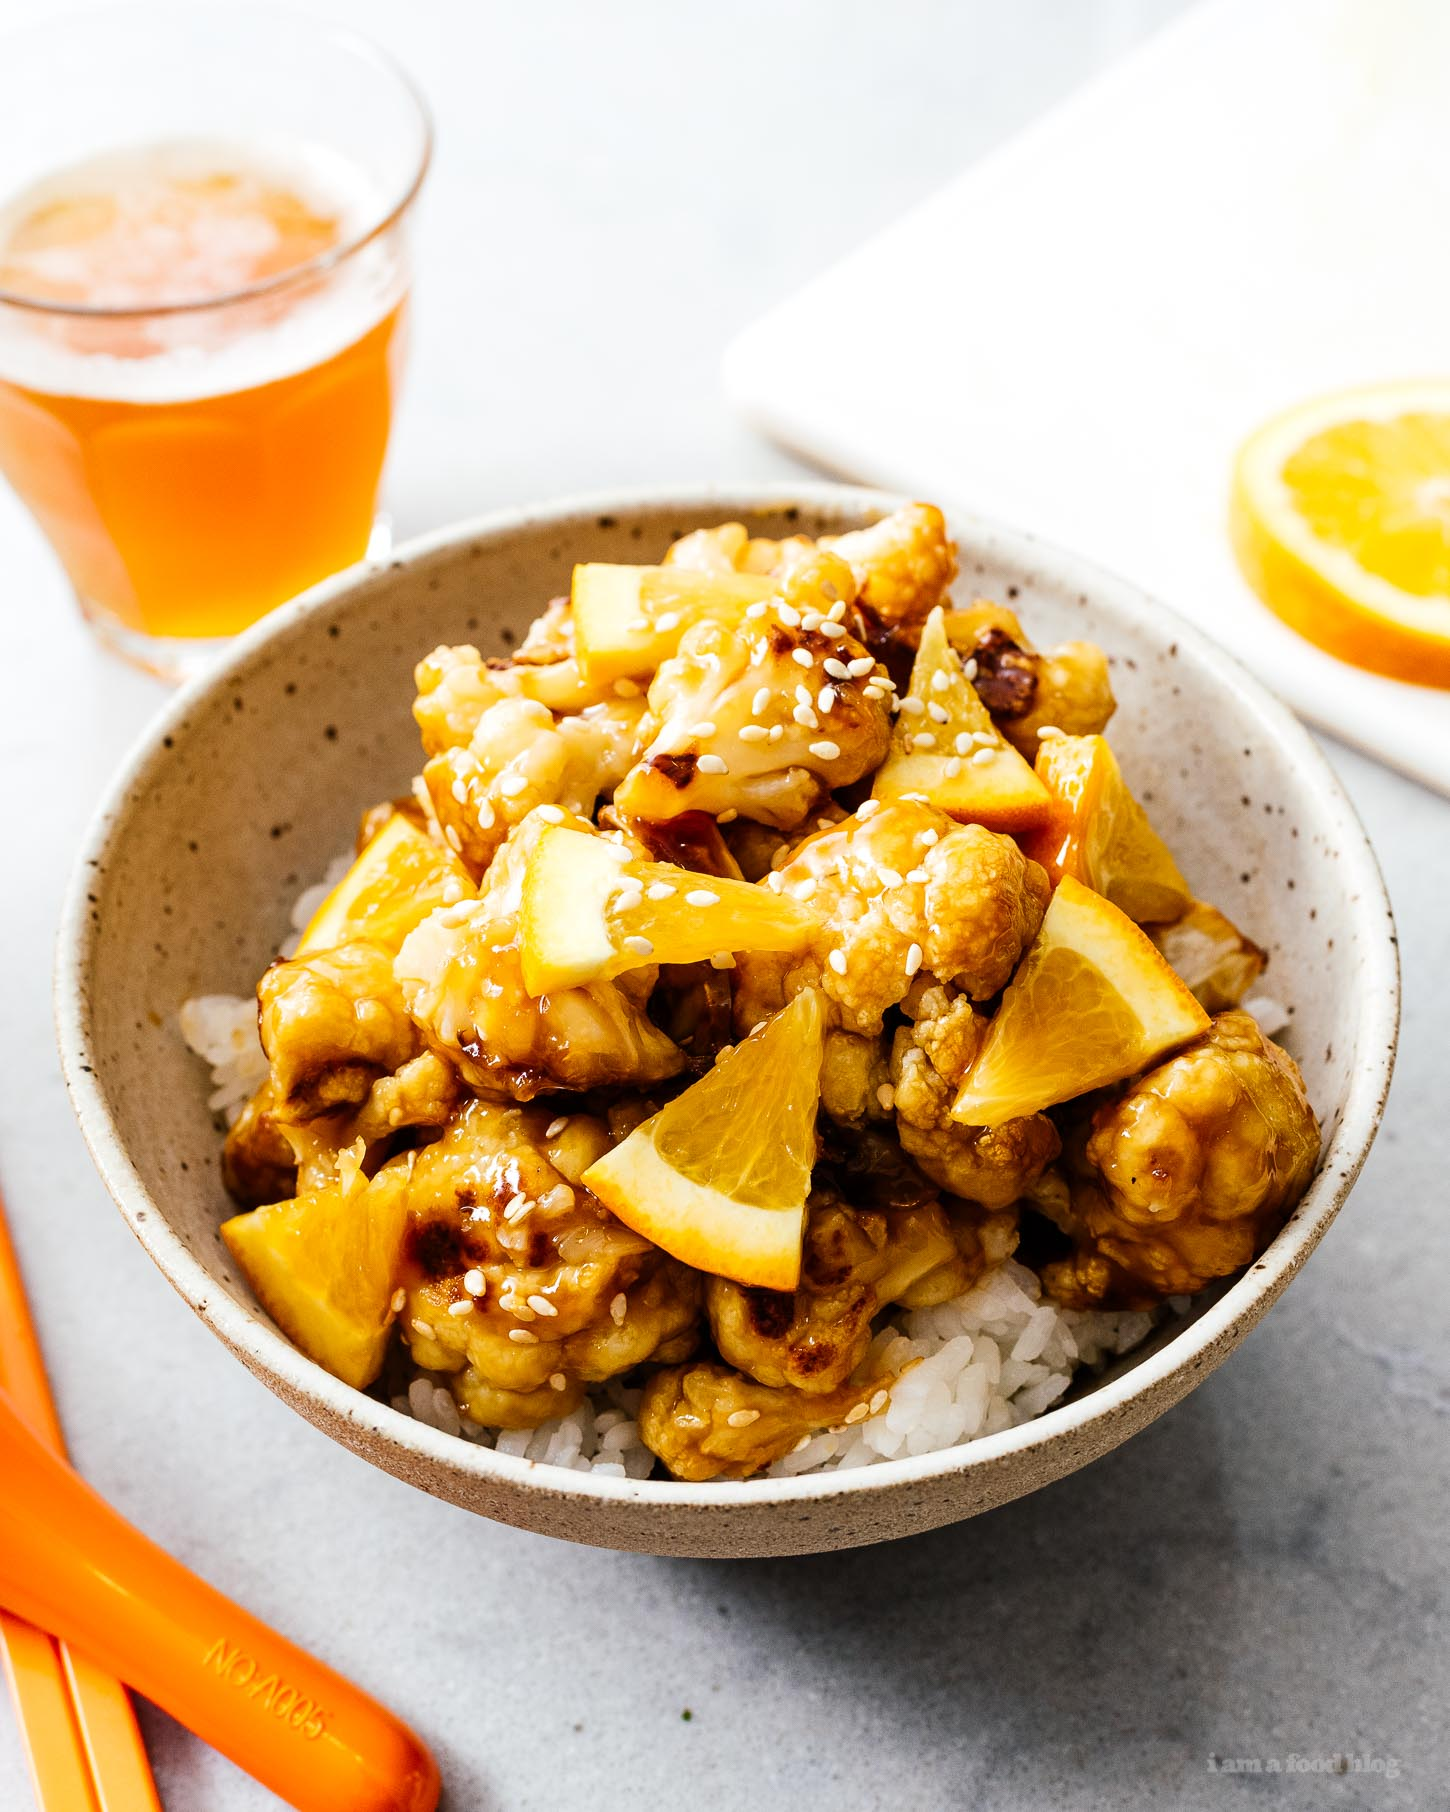 A super healthy, delicious, and easy oven broiled vegan orange cauliflower recipe. Everything that's great about orange chicken with zero guilt. #vegan #orangechicken #easyrecipes